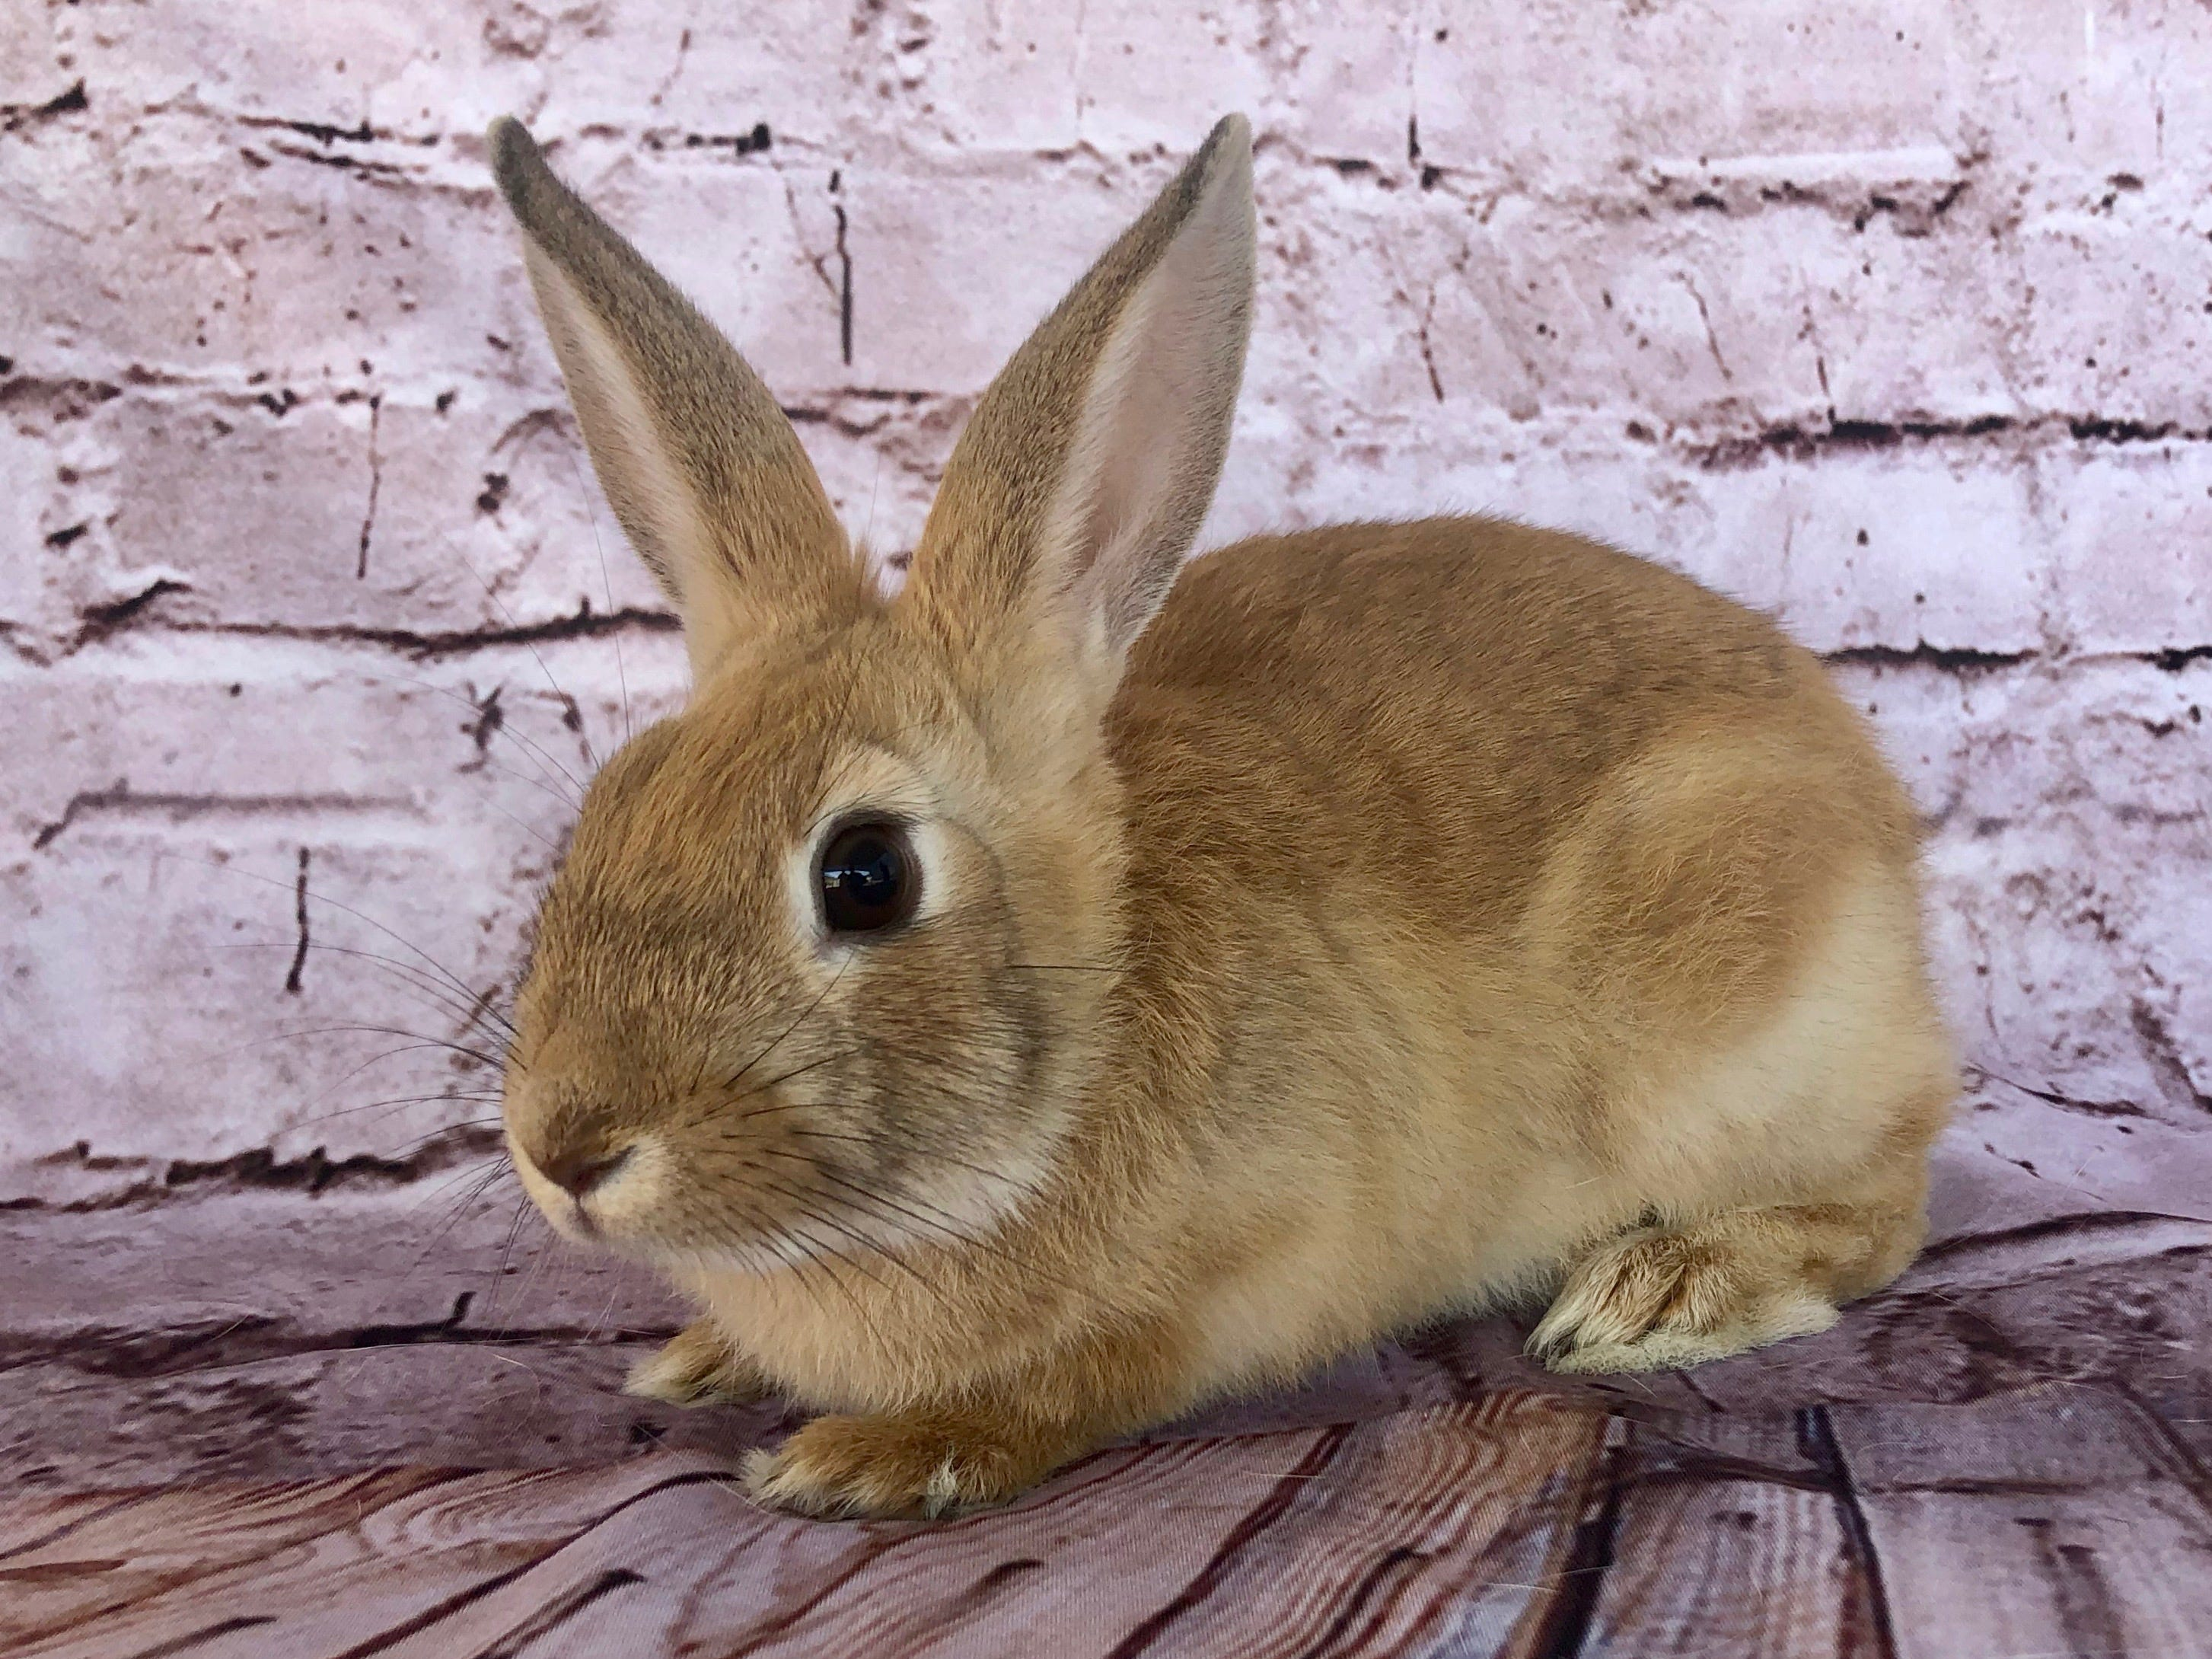 Adoptable Sophie is one of dozens of underage rabbits who came under the care of Ventura County Animal Services in 2018. So many baby bunnies arrive at the shelter after being bought on impulse and then discarded. The VCAS Bunny Brigade foster program provides a safe and loving temporary home for sweet little bunnies like Sophie until they are old enough to be spayed and neutered and can be made available for adoption. The Bunny Brigade provides education for potential adopters and offers all supplies for healthy indoor living at a reasonable cost. Visit the shelter at 600 Aviation Drive in Camarillo and ask for ID A697936 to meet Sophie and learn about the rewarding lifetime commitment of adding a house rabbit to your home. For details about adoption hours, offsite events, rabbit supplies, bunny nail trims and compatibility dates, visit facebook.com/VCASBunnyBrigade.